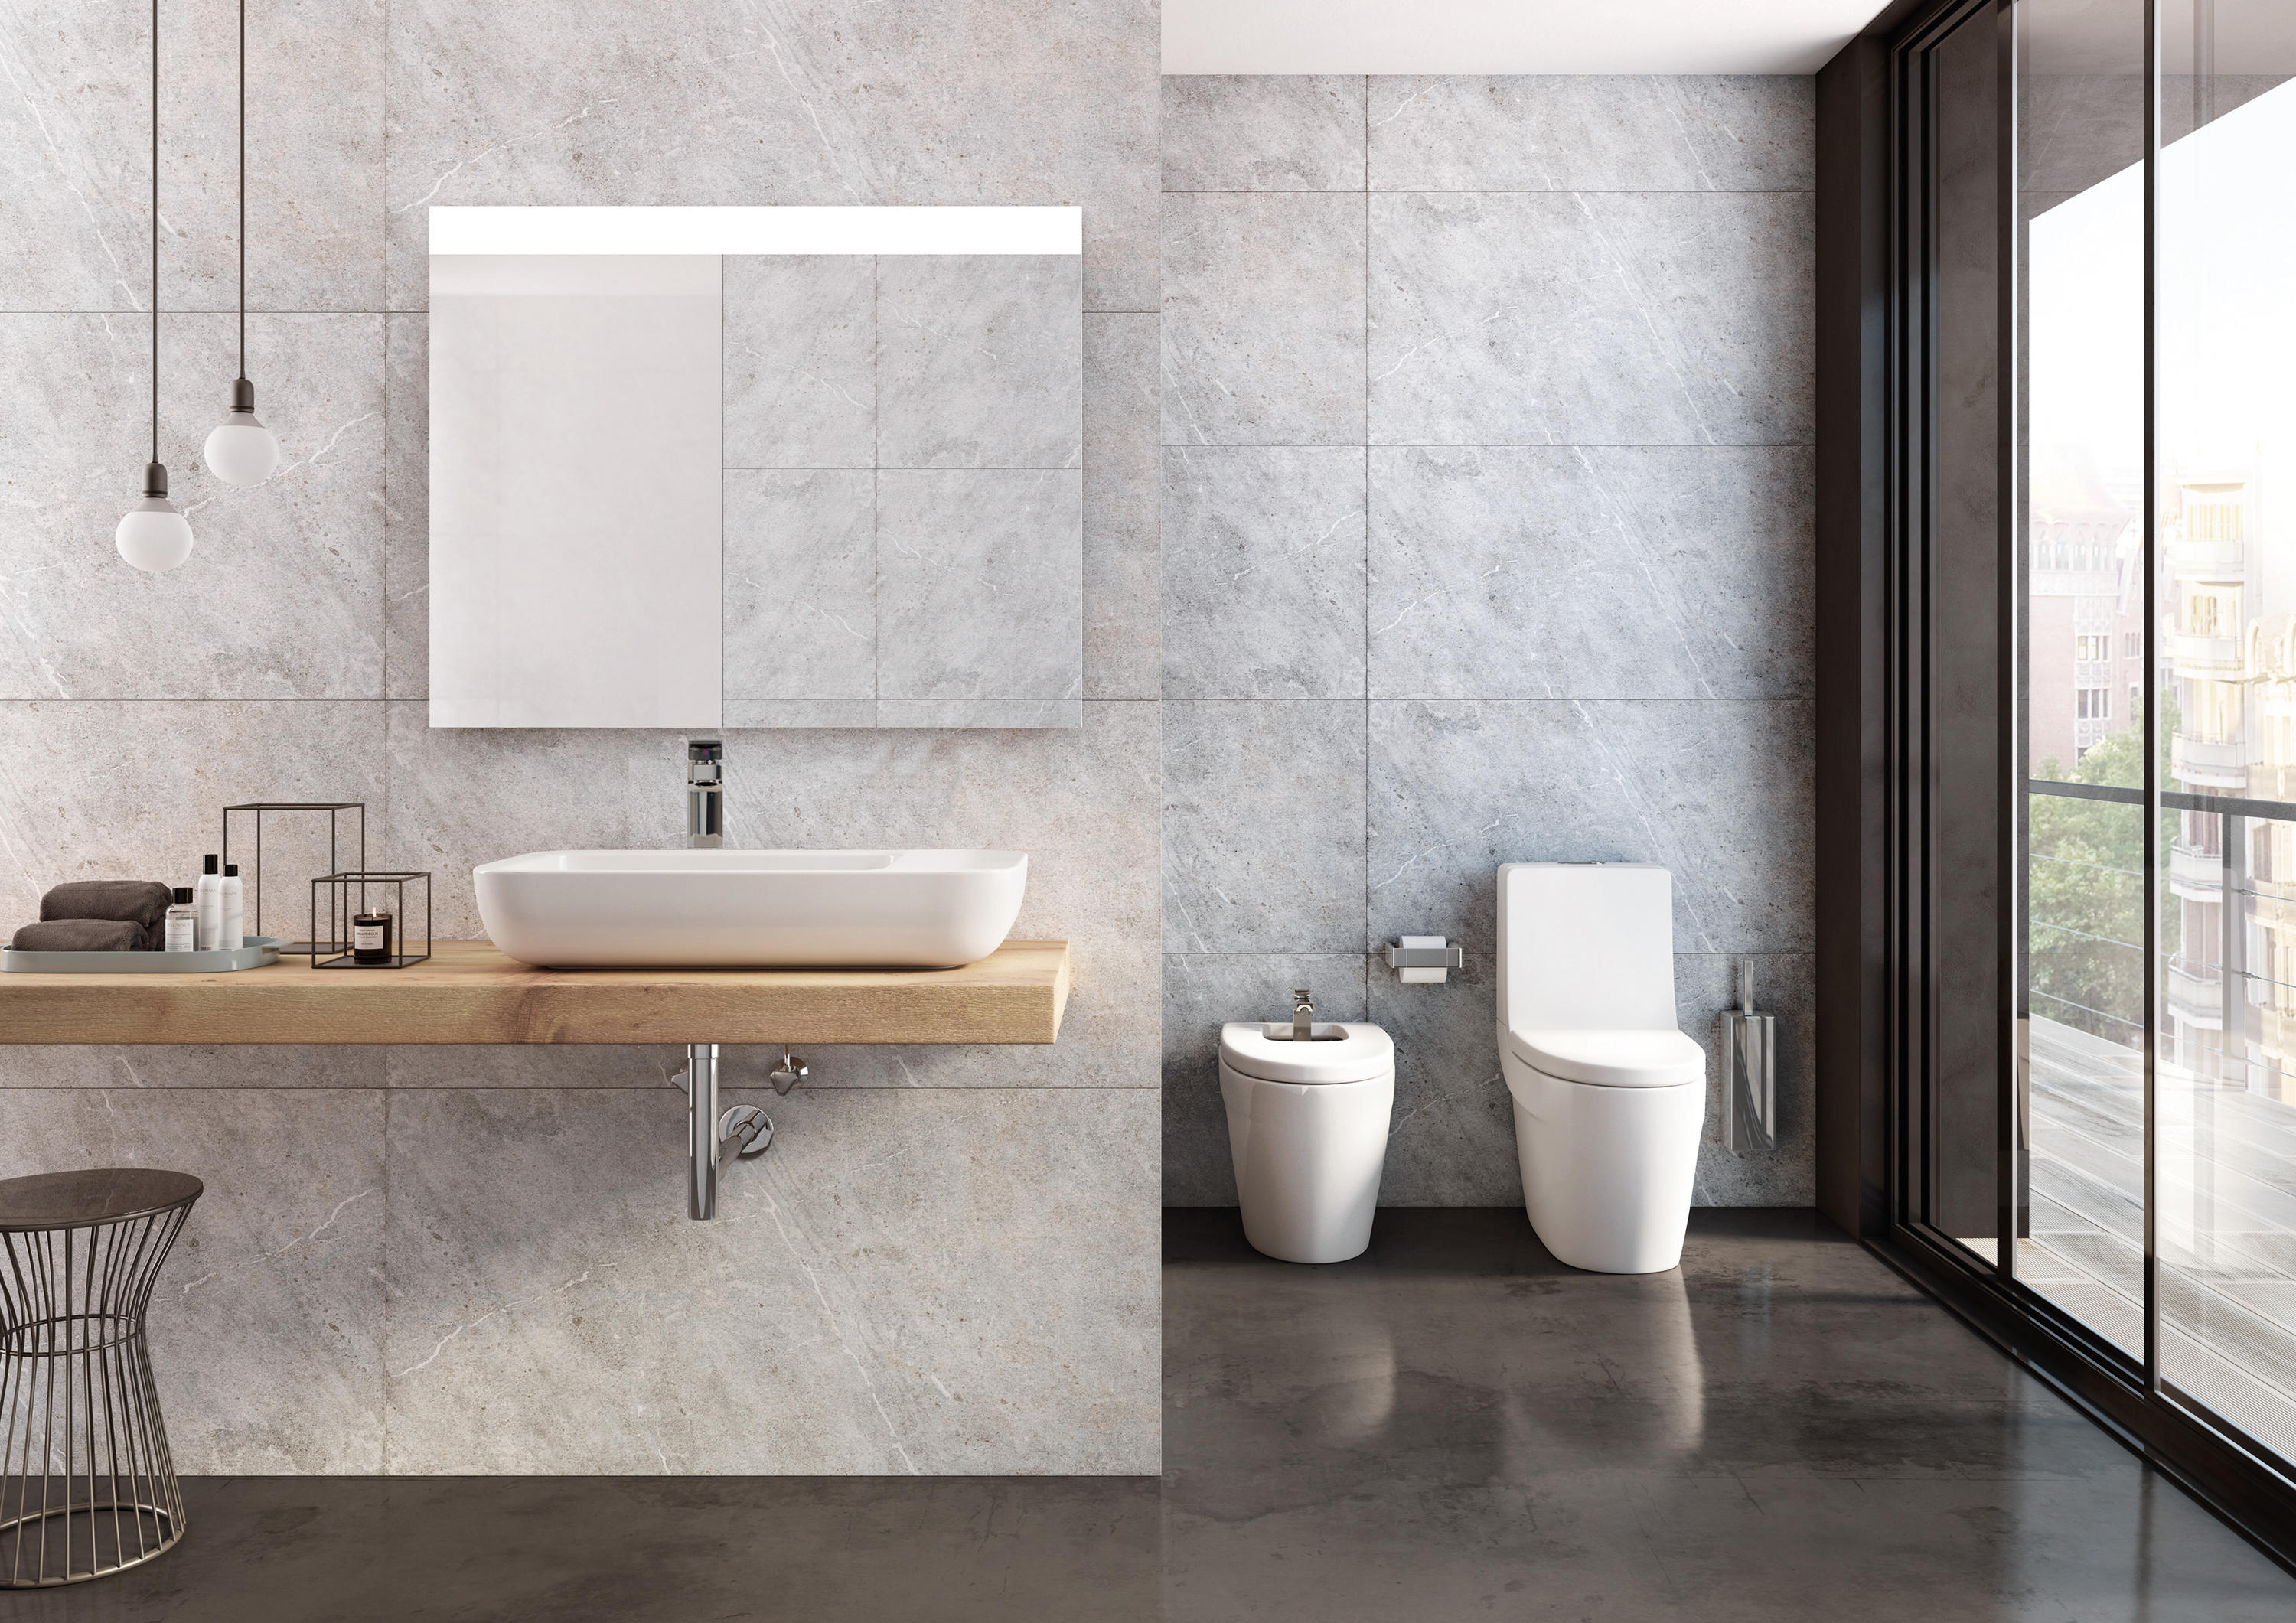 Khroma lavabo lavabos mueble de roca architonic for Lavabo diverta de roca